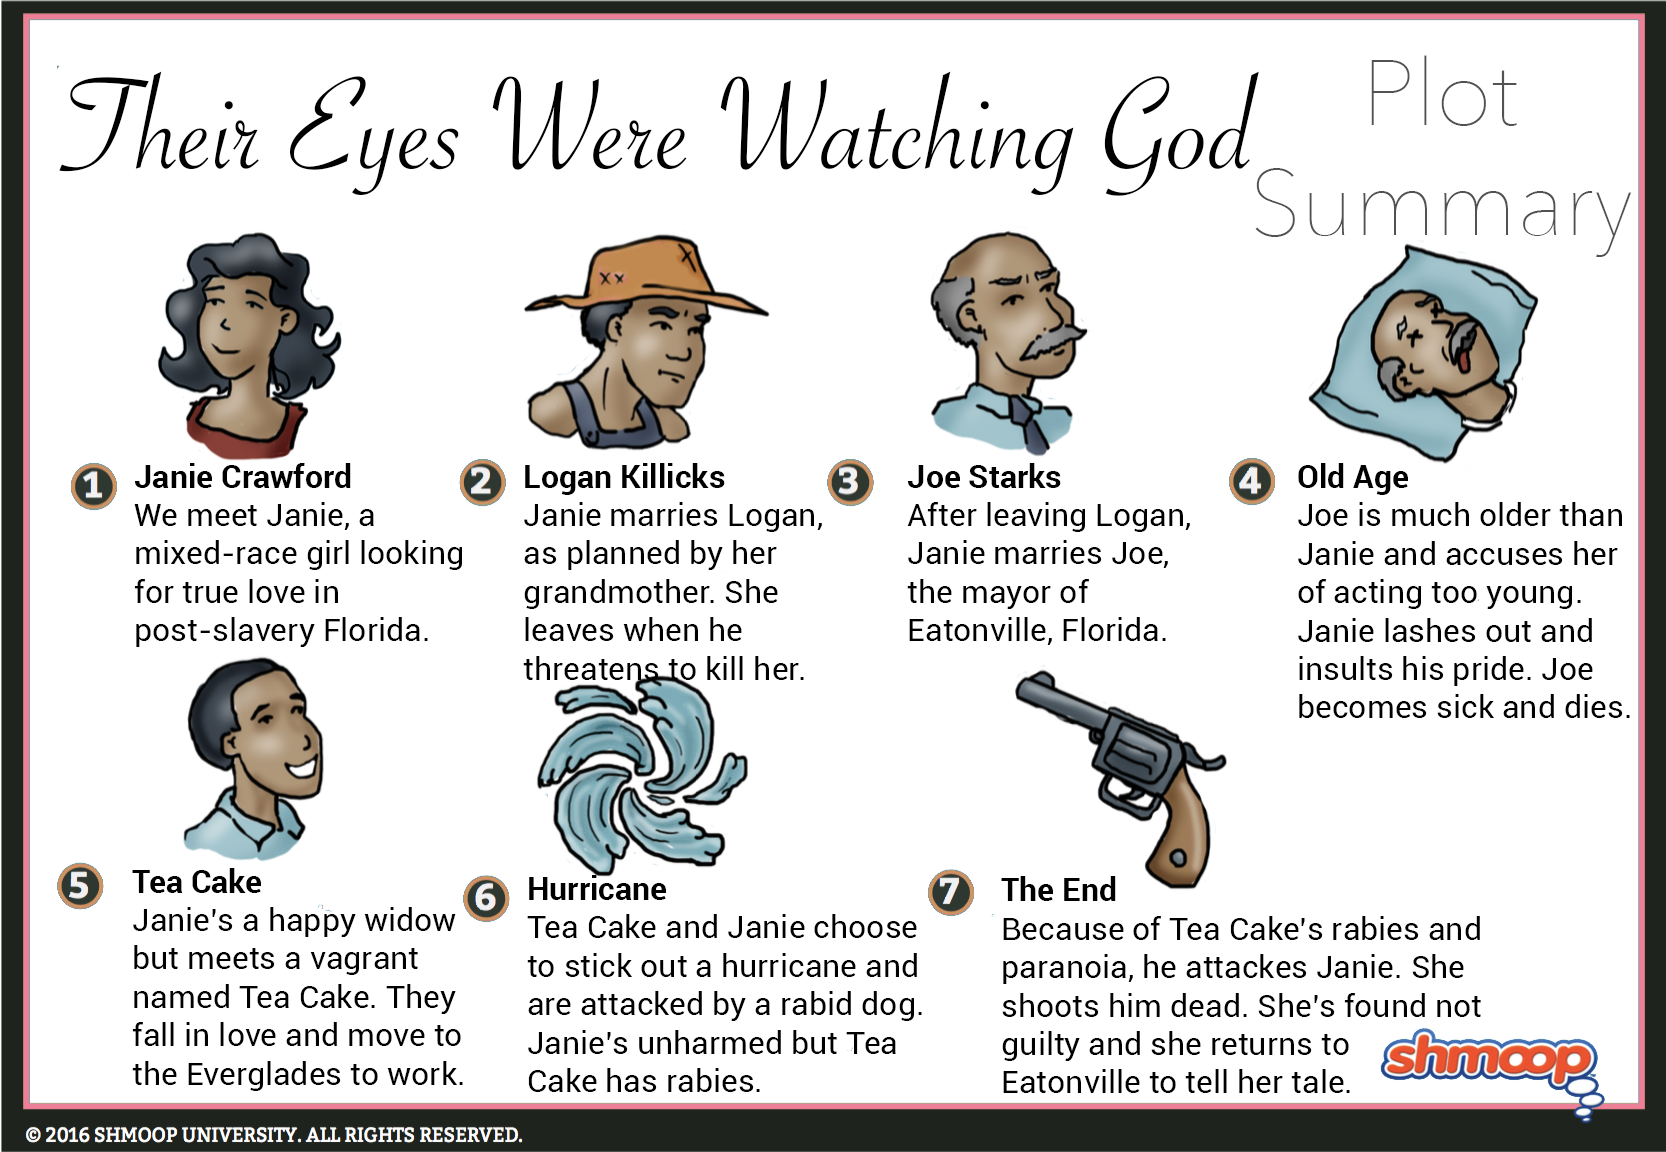 essays on their eyes were watching god symbolism Zora neale hurston's their eyes were watching god research paper i am me, my eyes toward god mark evans zora neale hurston an early twentieth century afro.